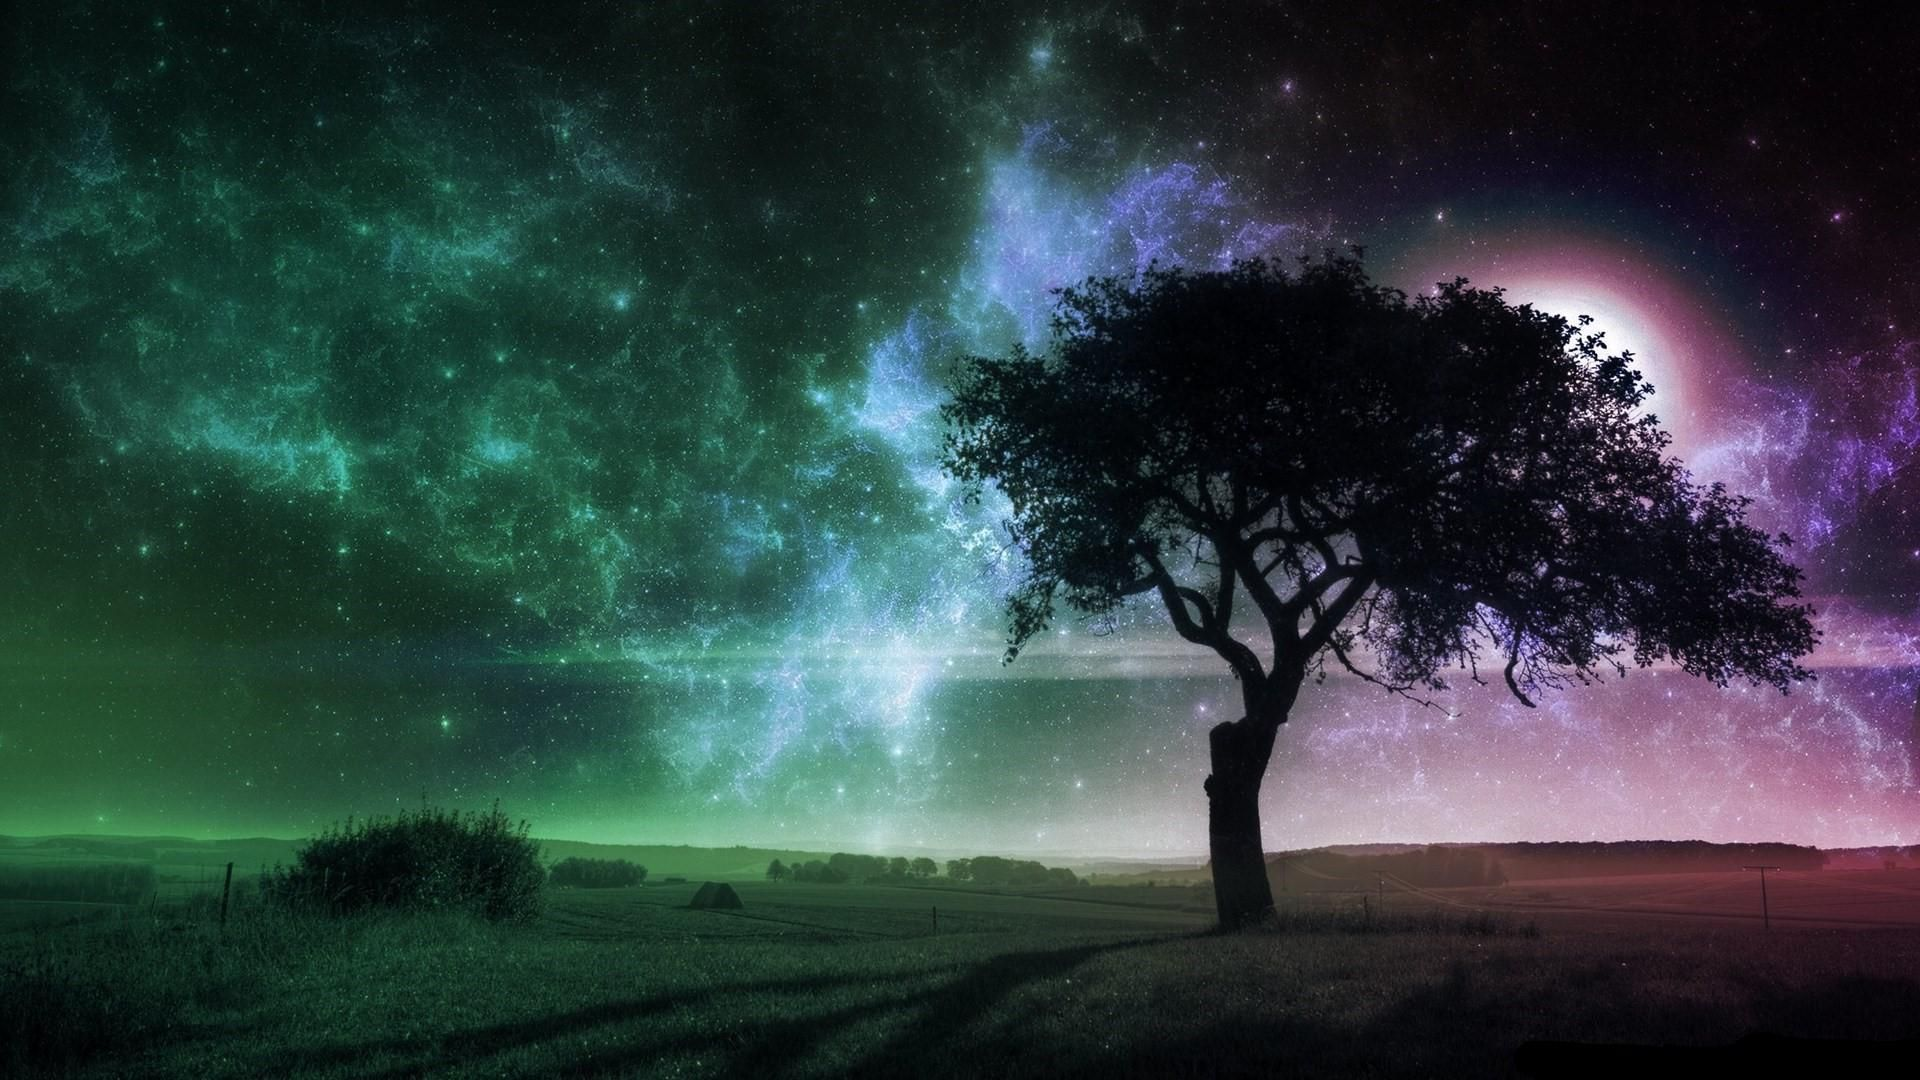 The Tree On The Background Of Space Art